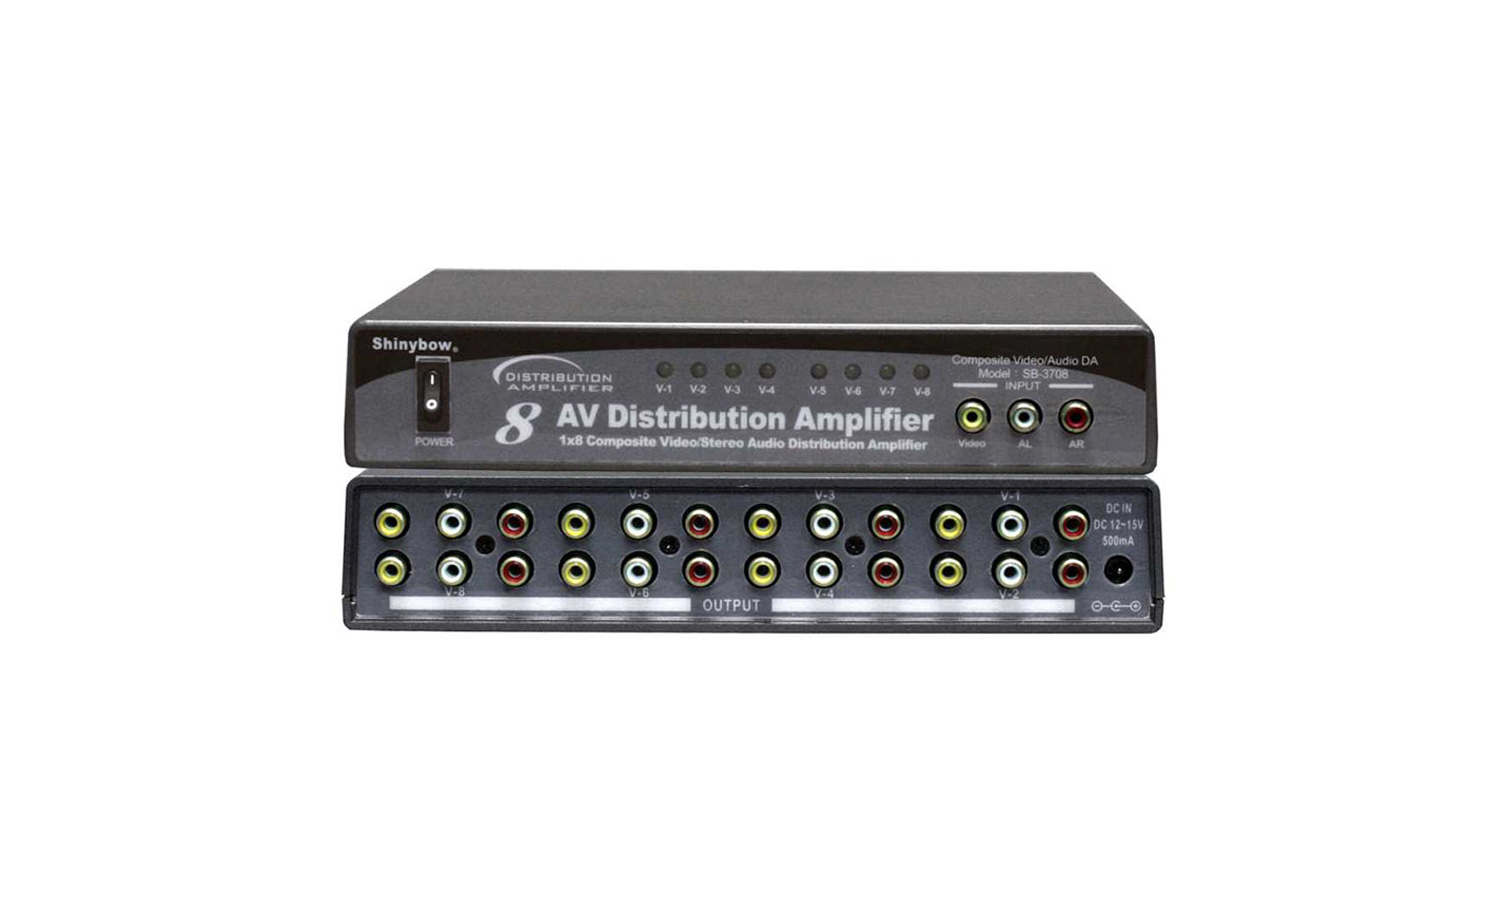 Sb 3708 Interstate Audio Video Distribution Amplifier Productinfo Specifications